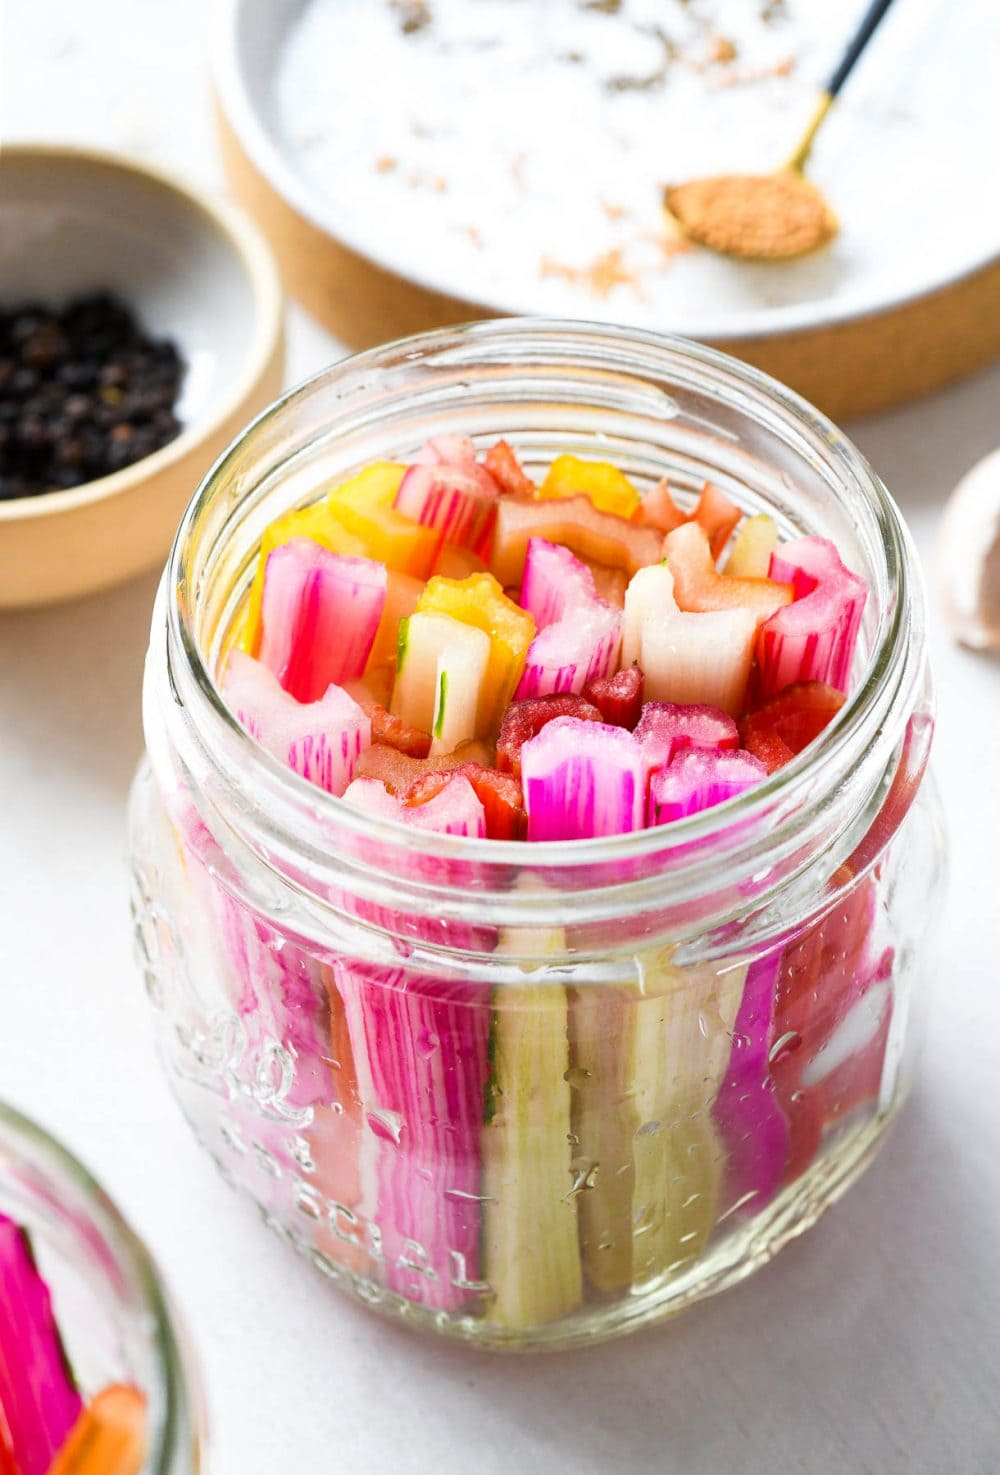 swiss chard stems in a clear jar, with peppercorns and spices in the backround